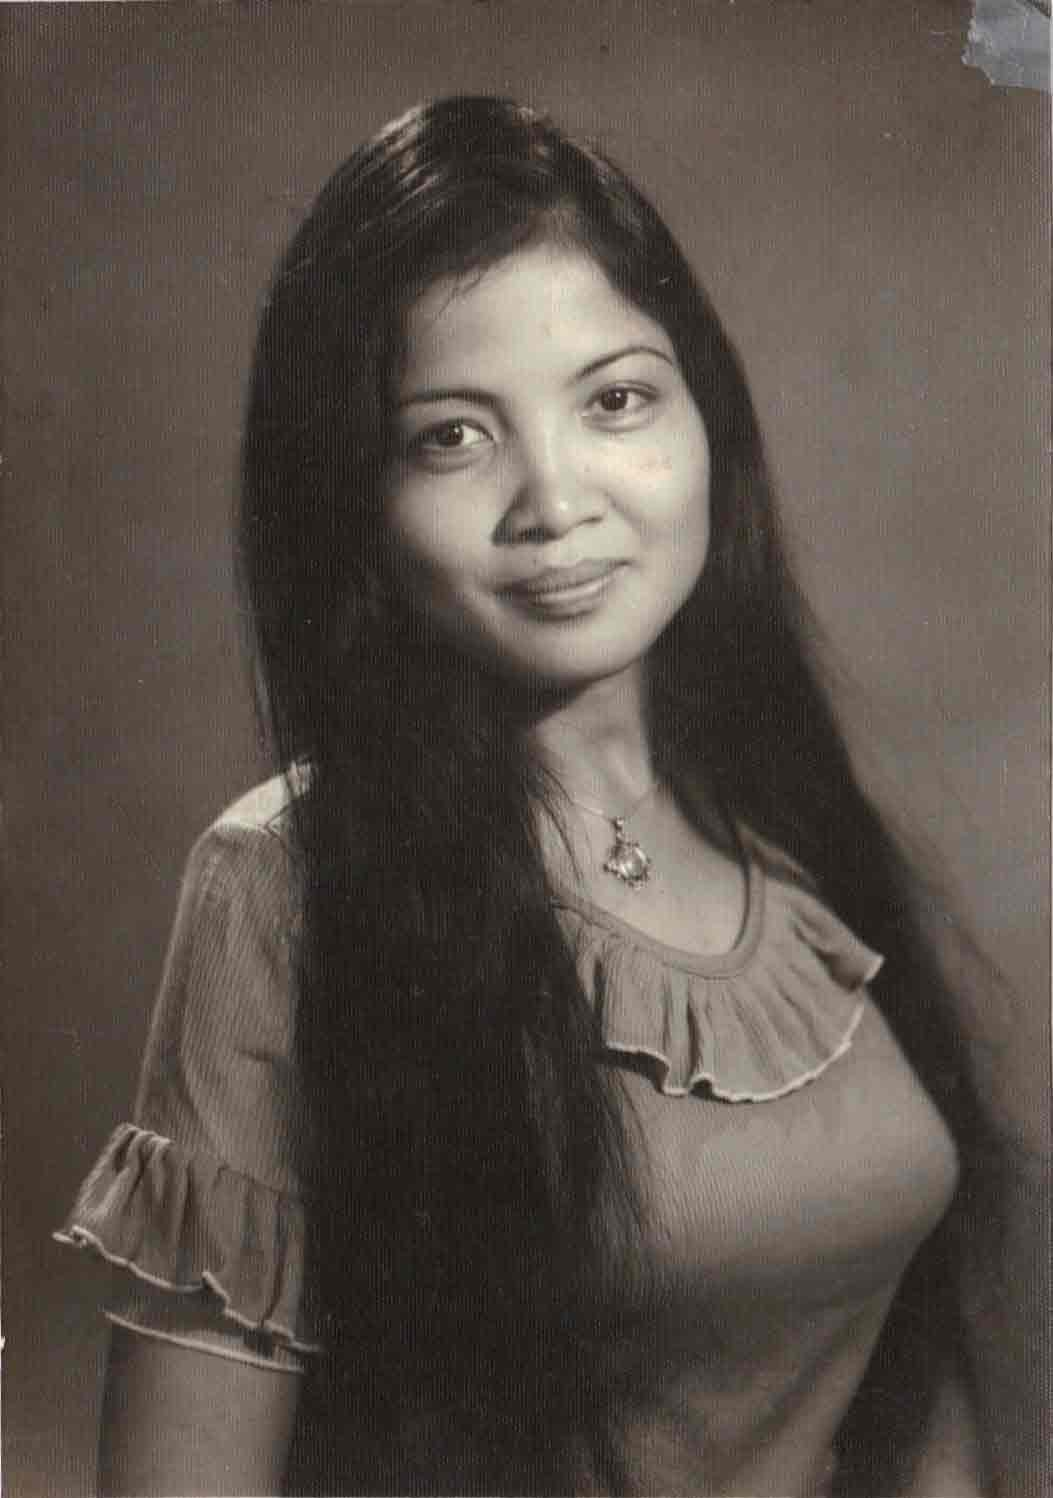 Photo used for Sian Soc's 1974 portrait.